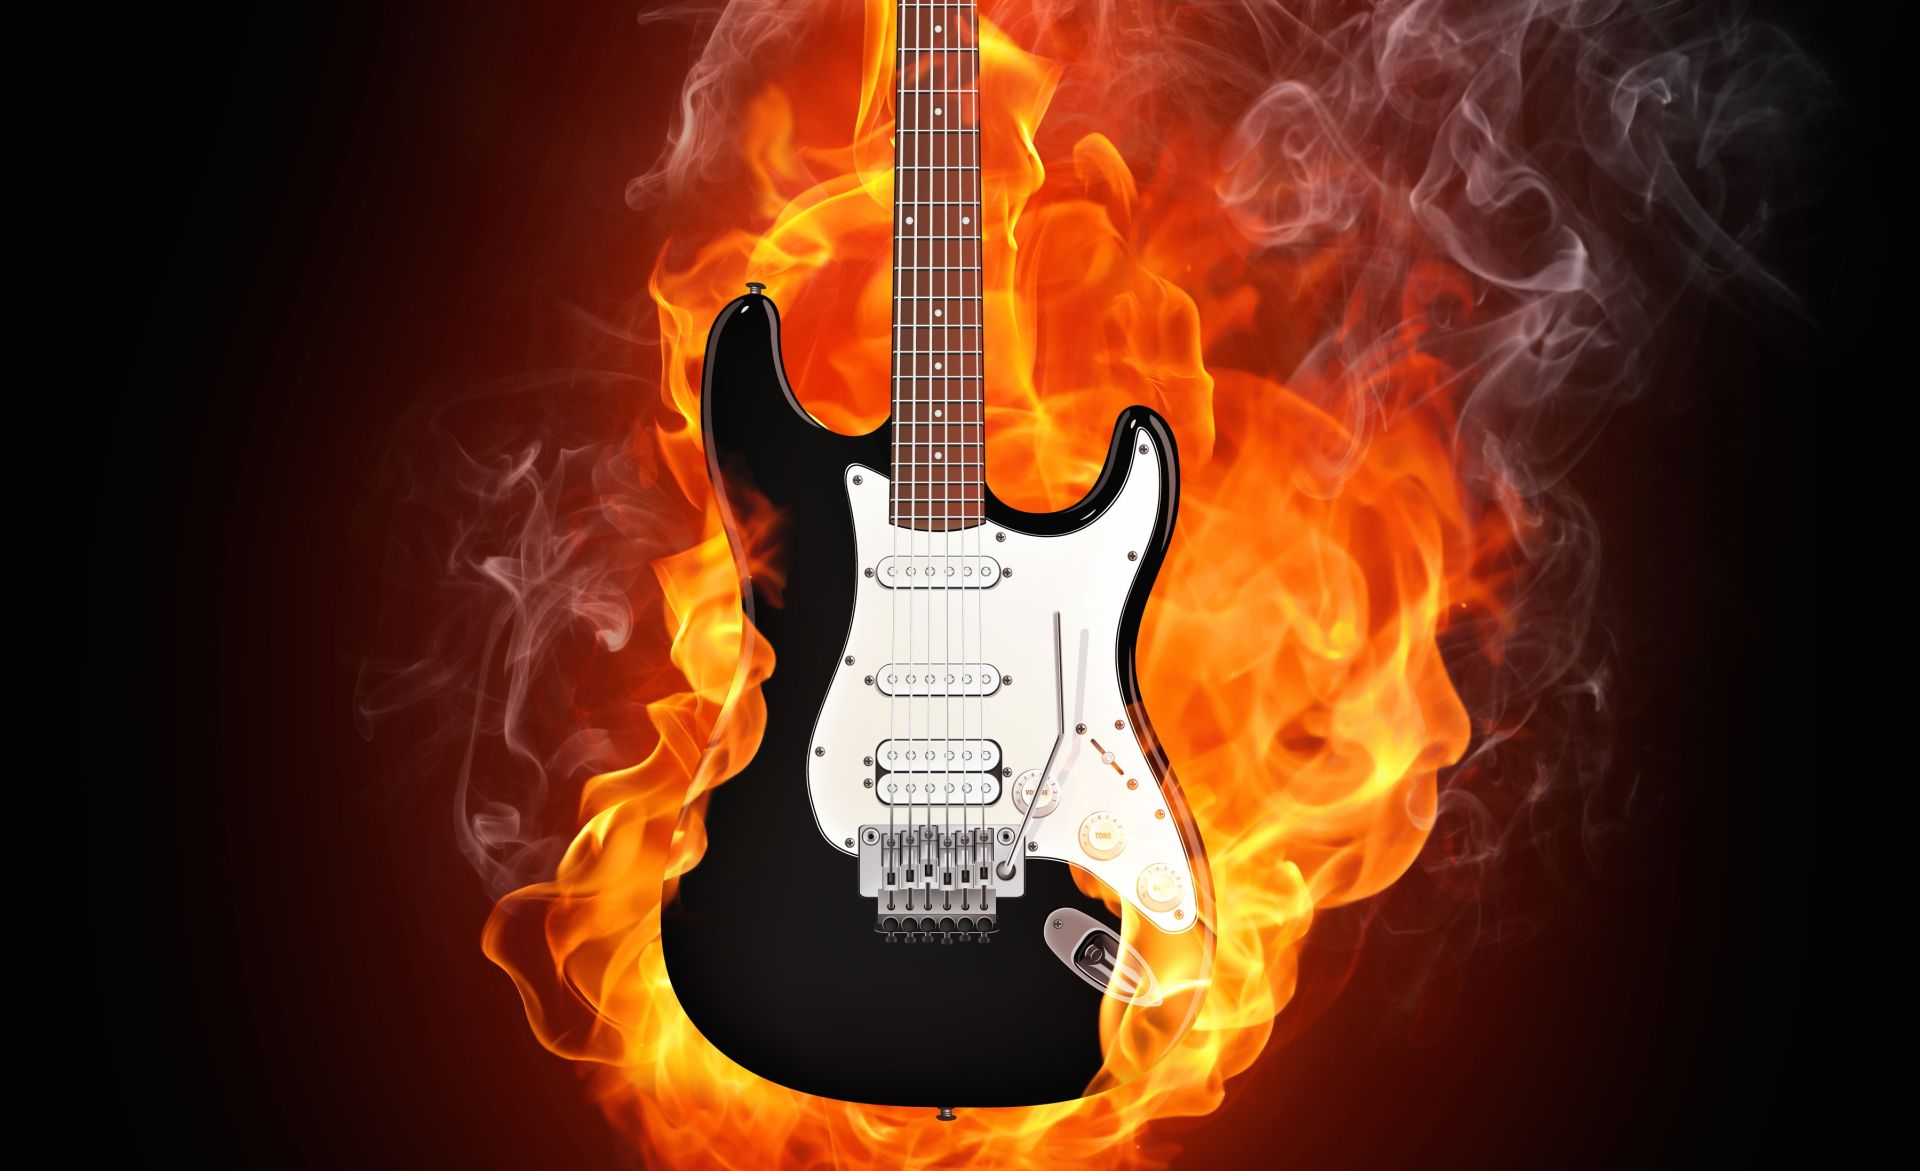 Fire Guitar, Wallpaper Theme